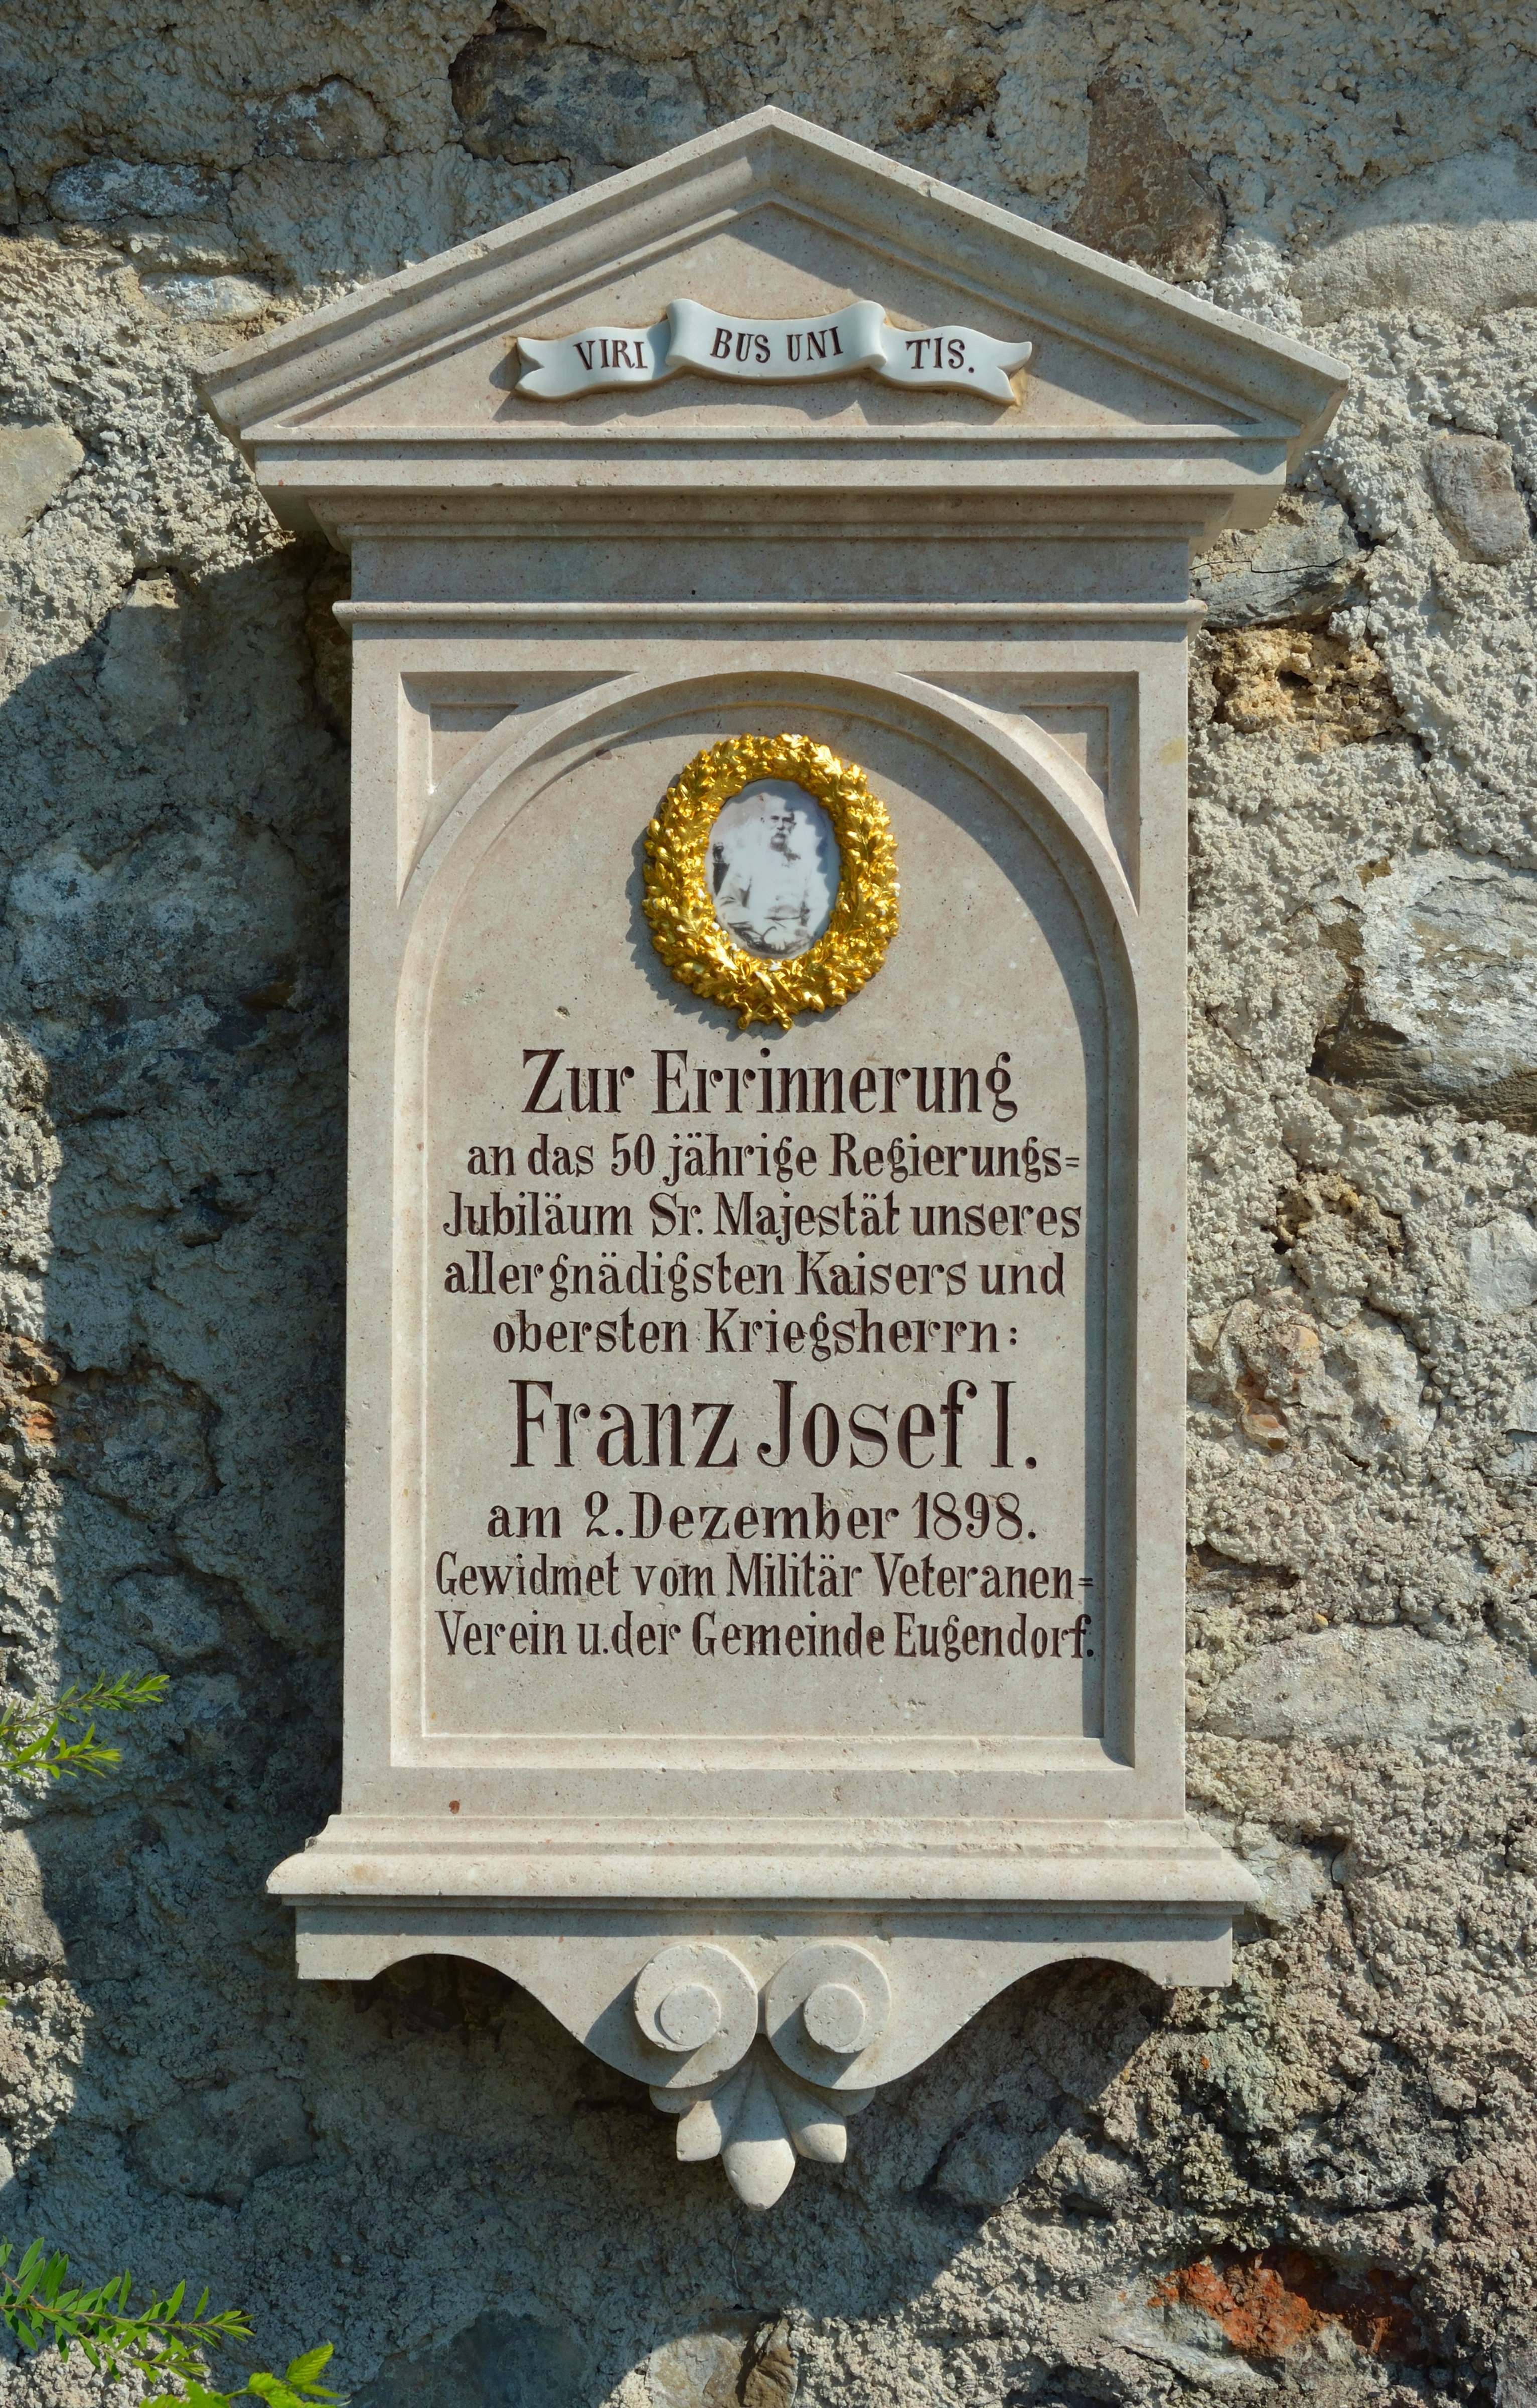 1898 memorial plaque to Franz Josef I